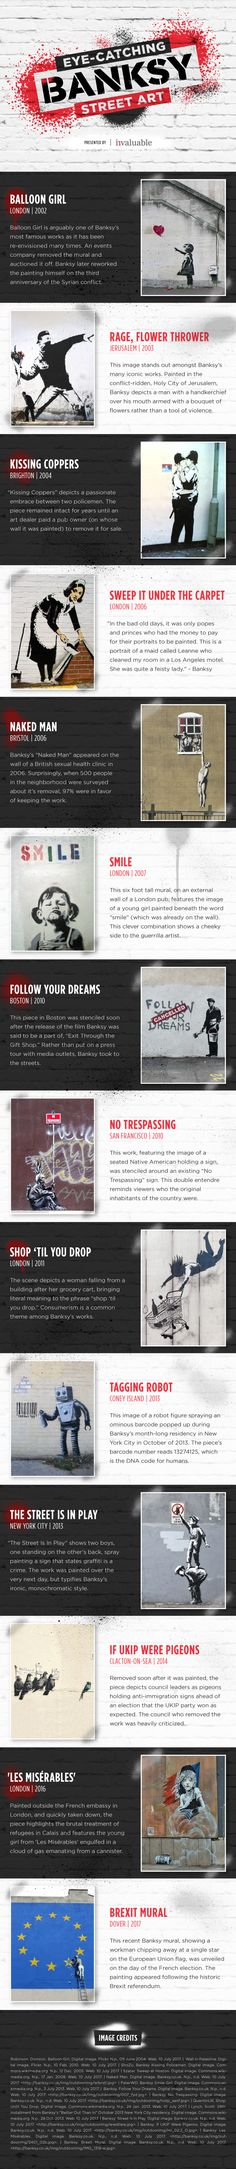 The Most Iconic Examples of Banksy Street Art from Around the World